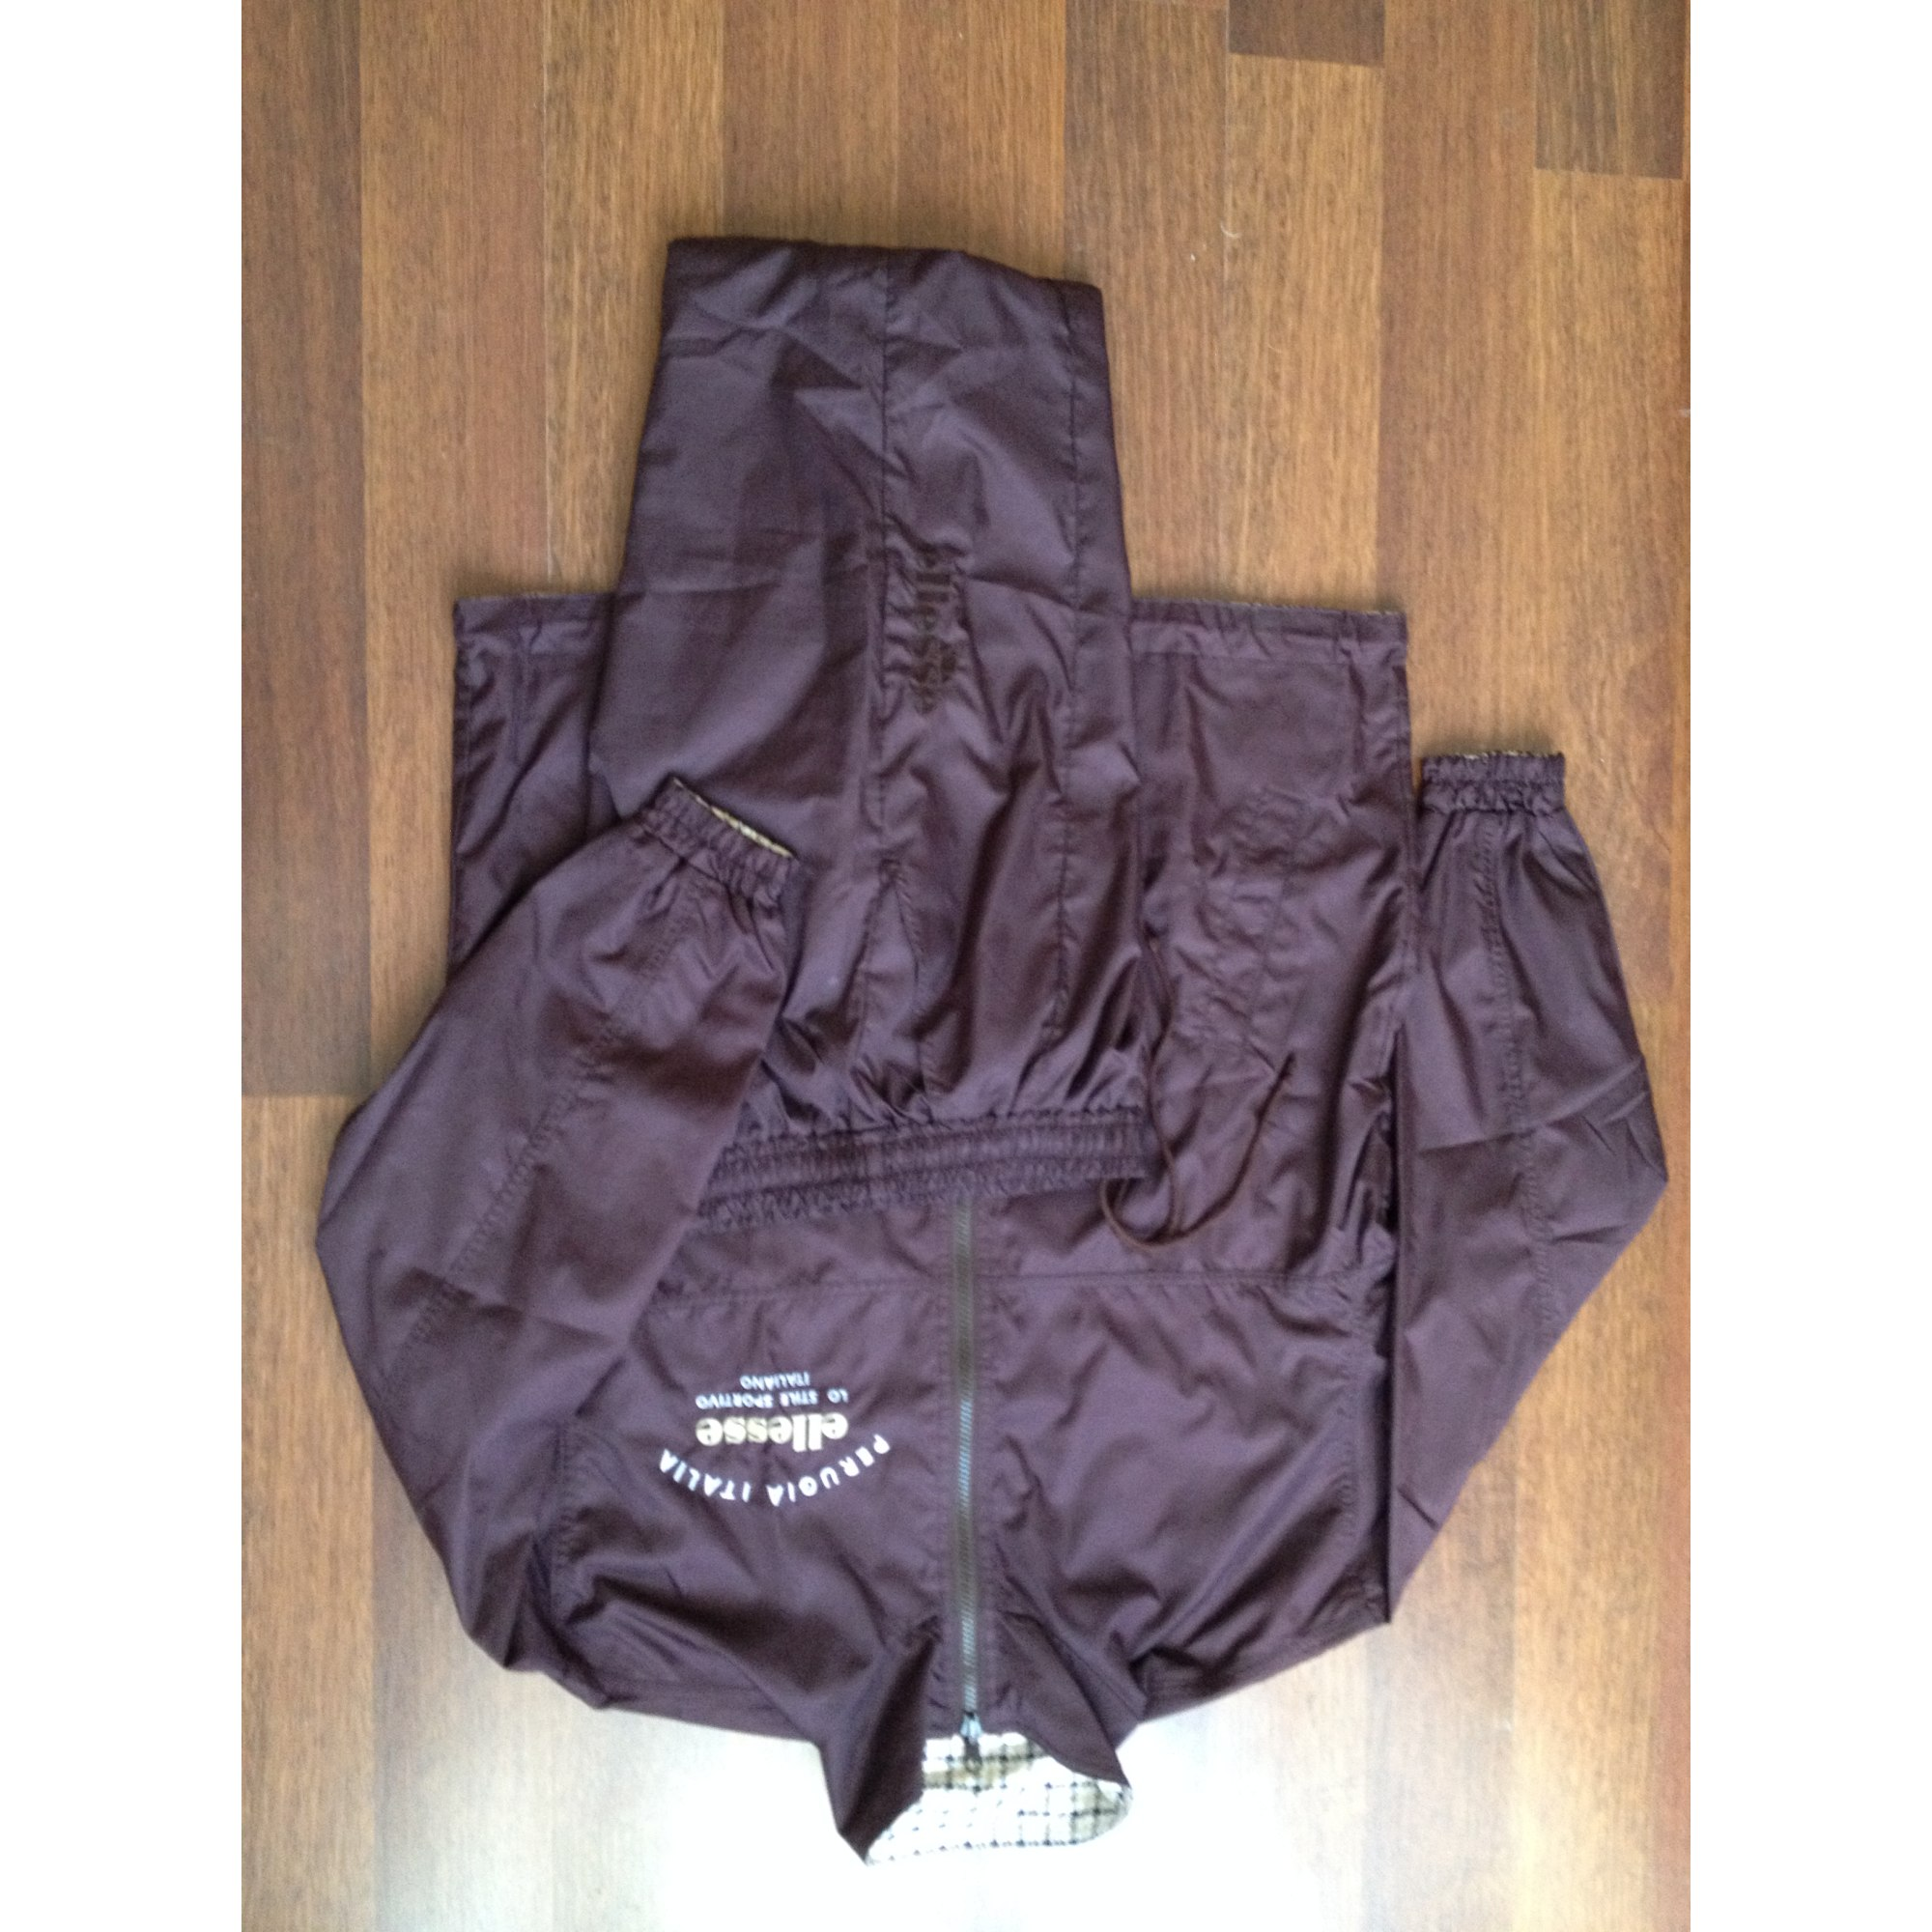 38 Marron T2 Ensemble m Ellesse 2493815 Jogging POxqTE